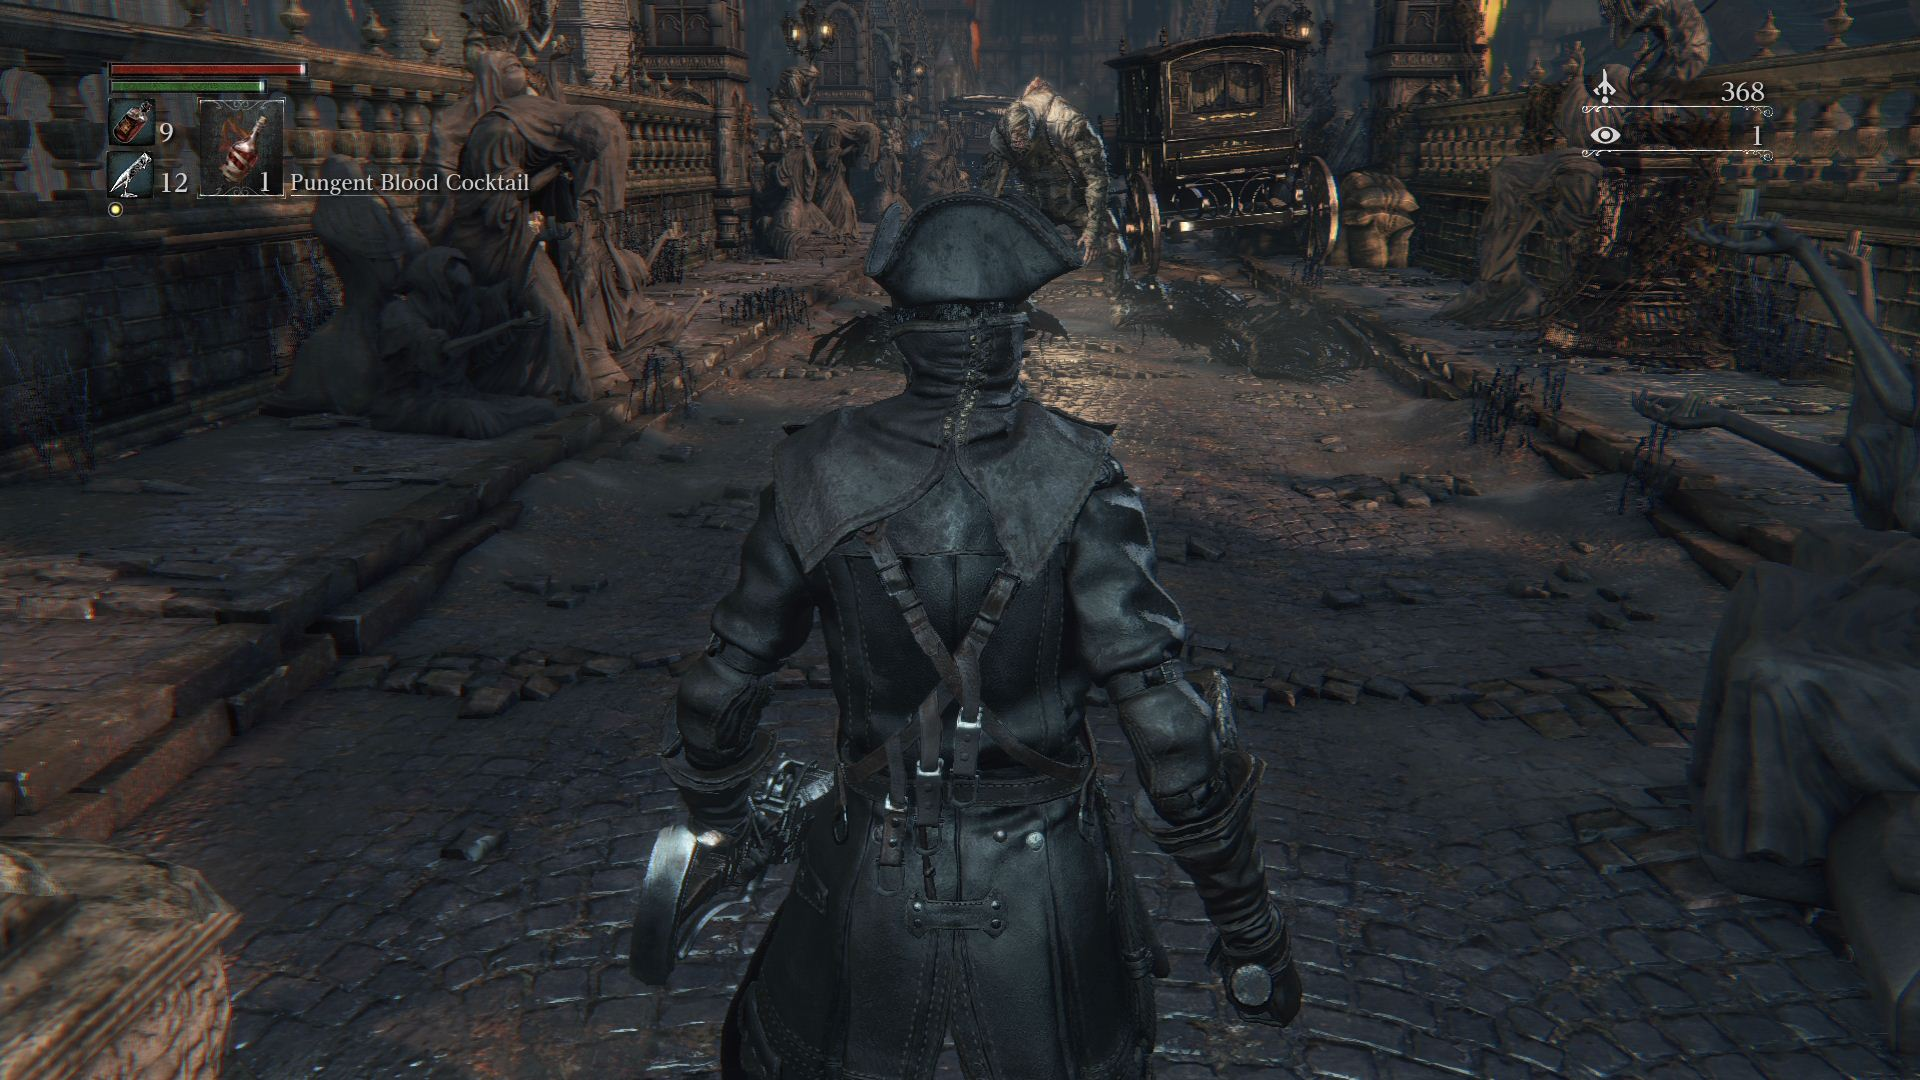 PS4 BLOODBORNE 16